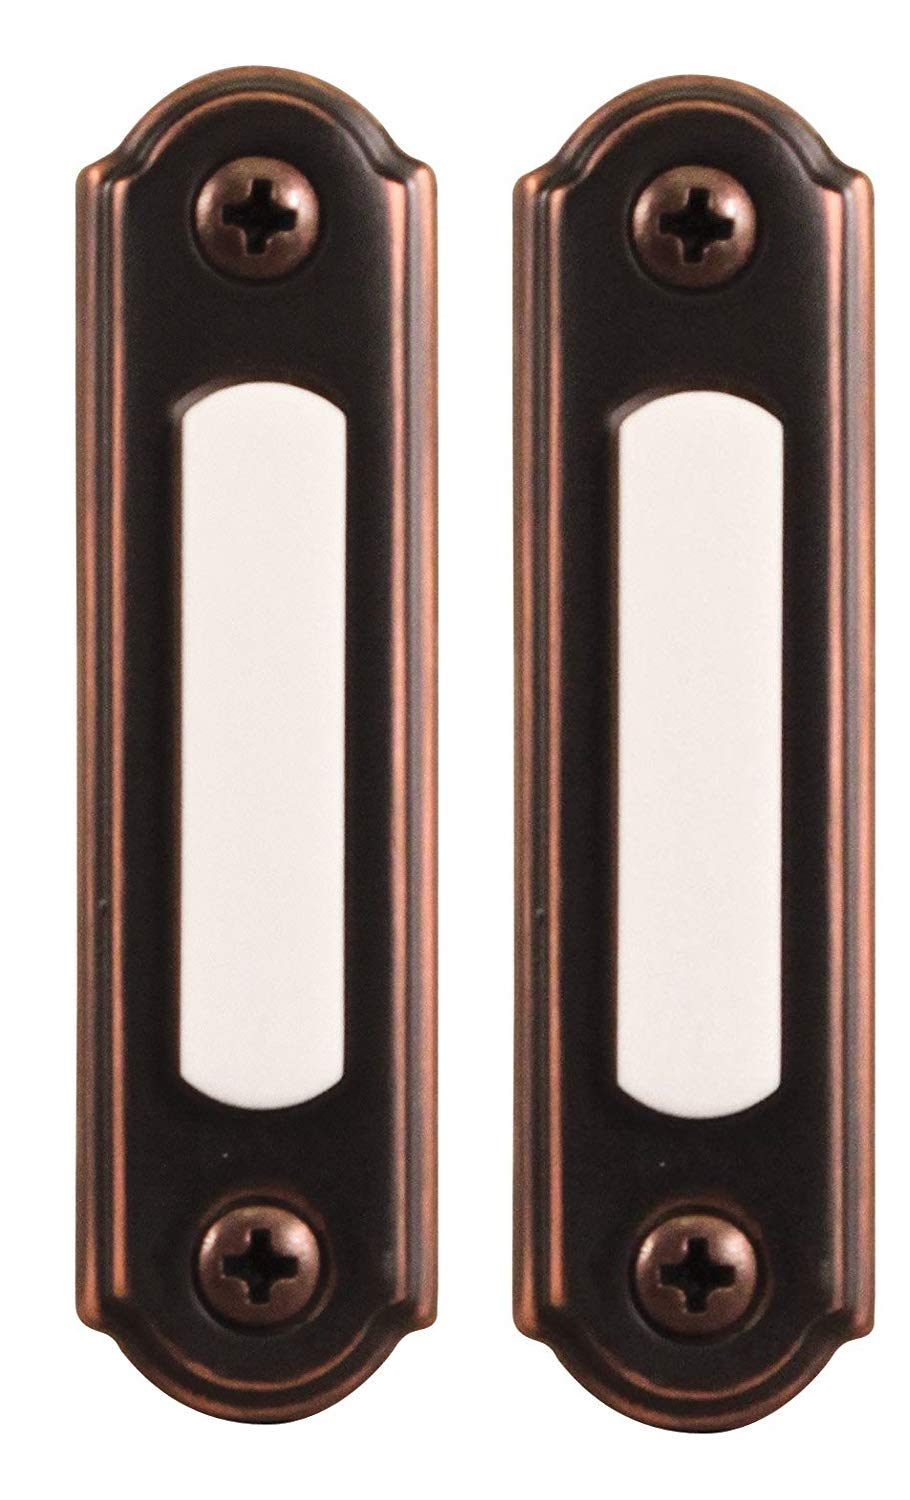 Heath Zenith SL-257-02 Wired Push Button, Oiled-Rubbed Bronze (2.(Pack))